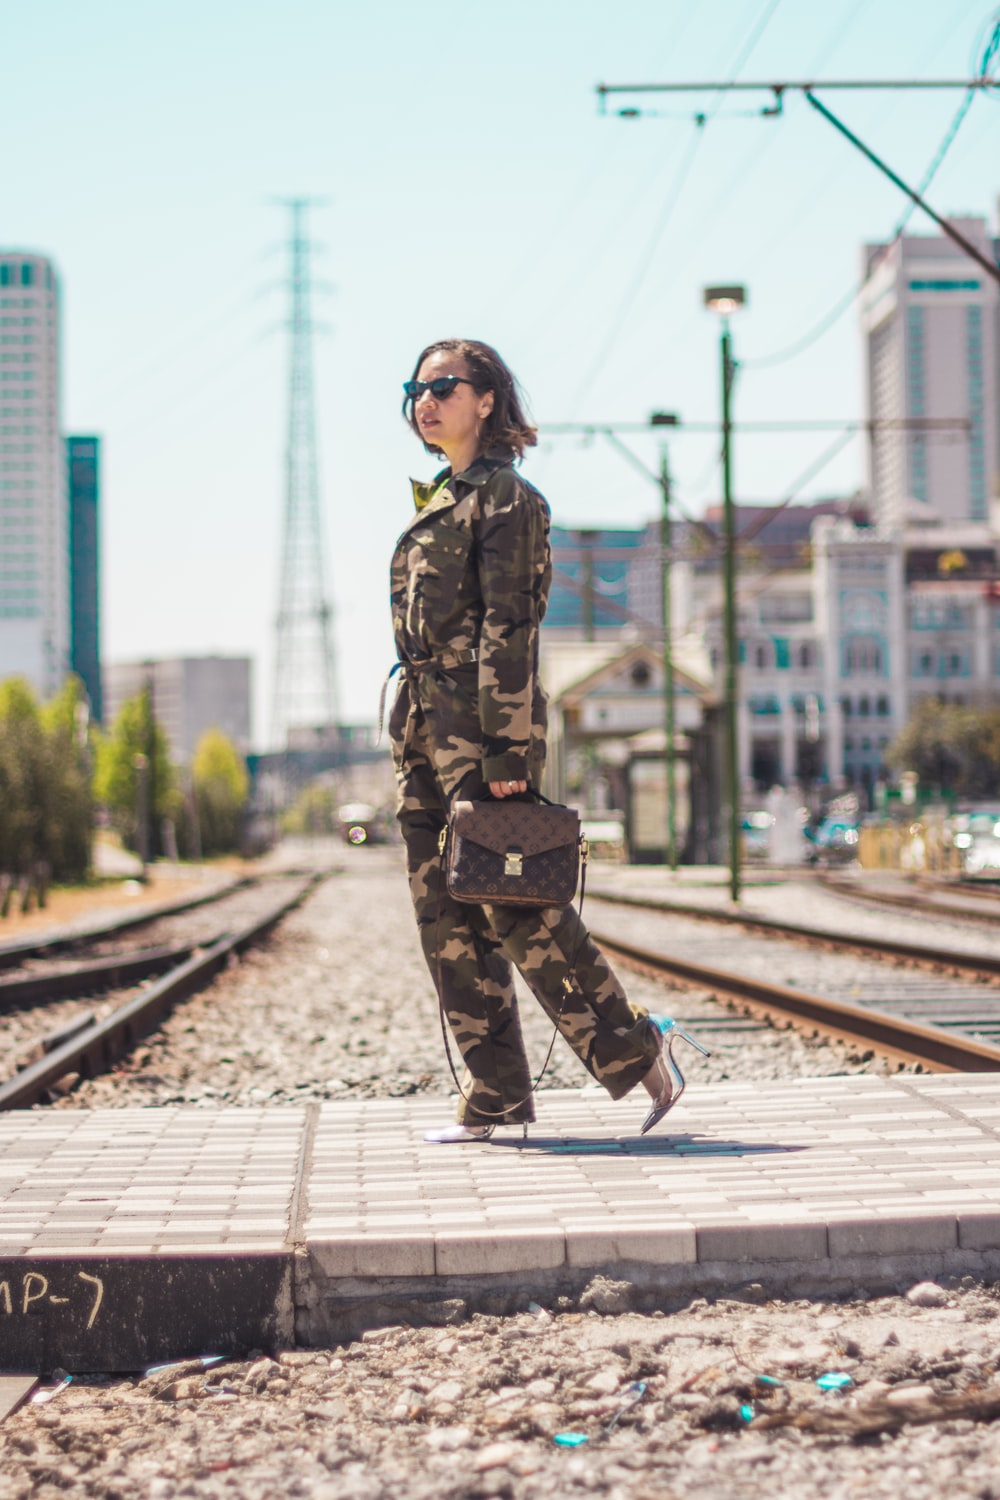 woman wearing camouflage soldier uniform carrying brown 2-way leather bag